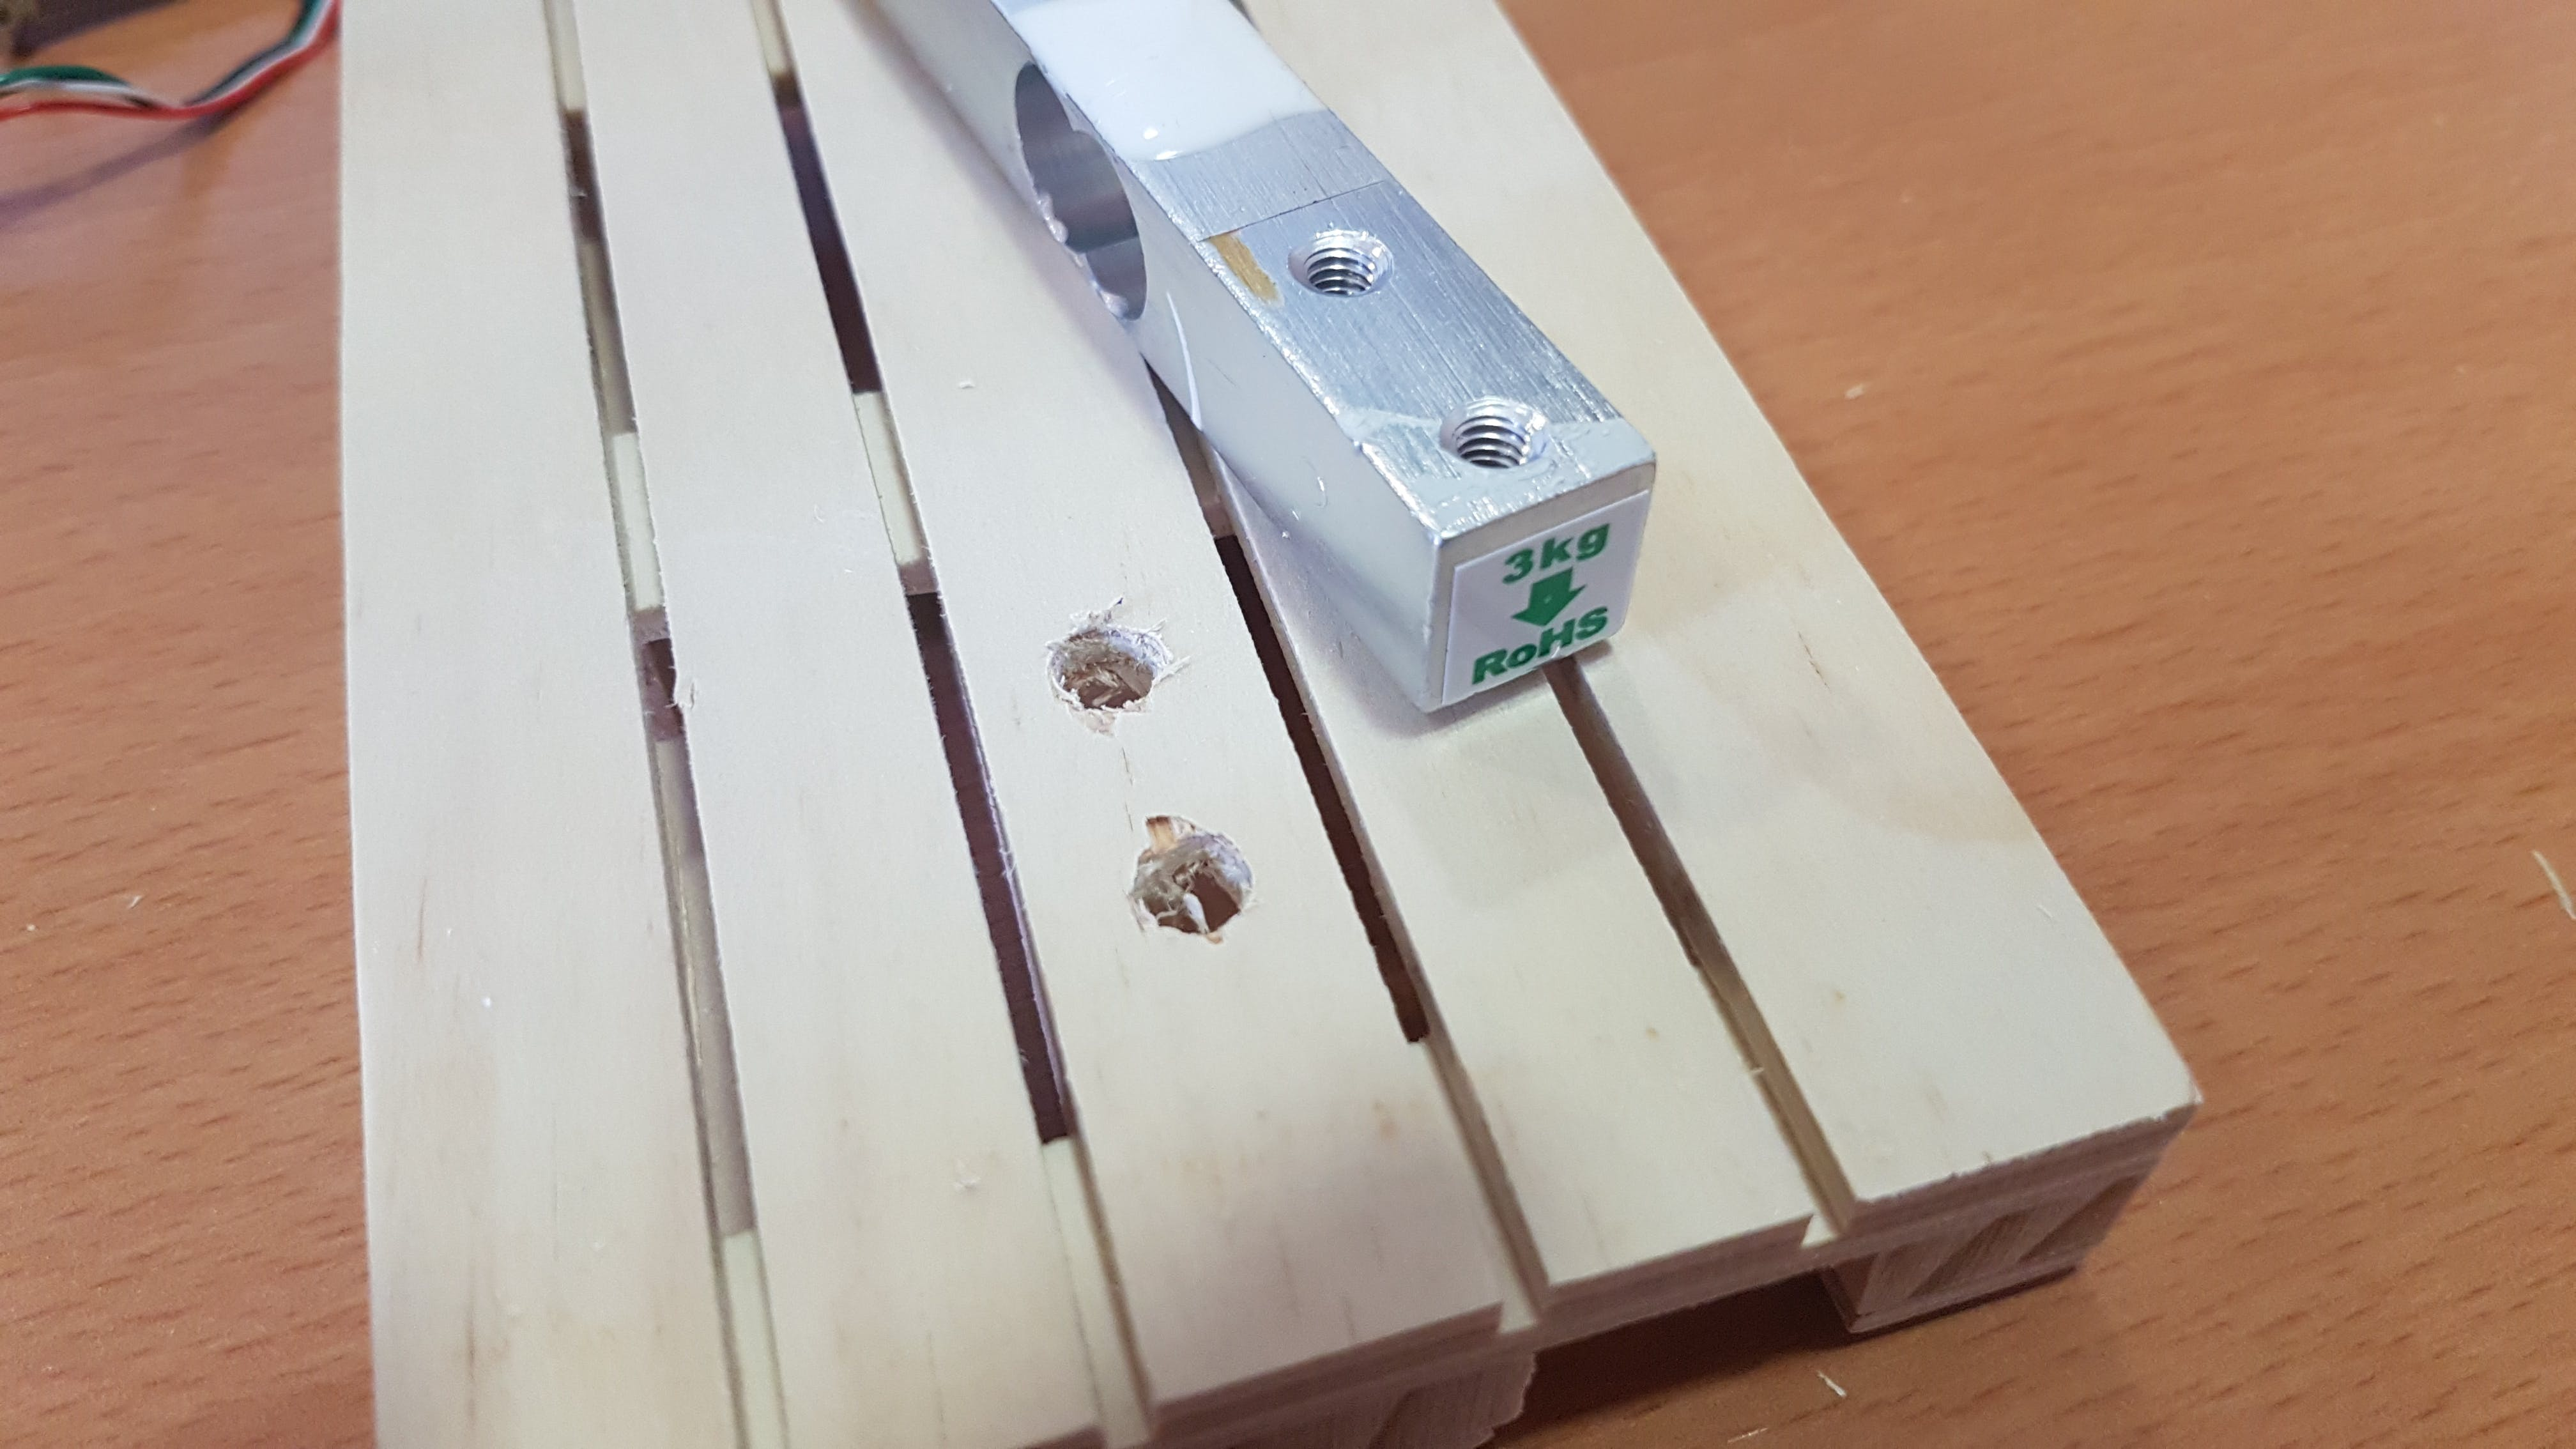 Hollowed pallet for introducing the screws